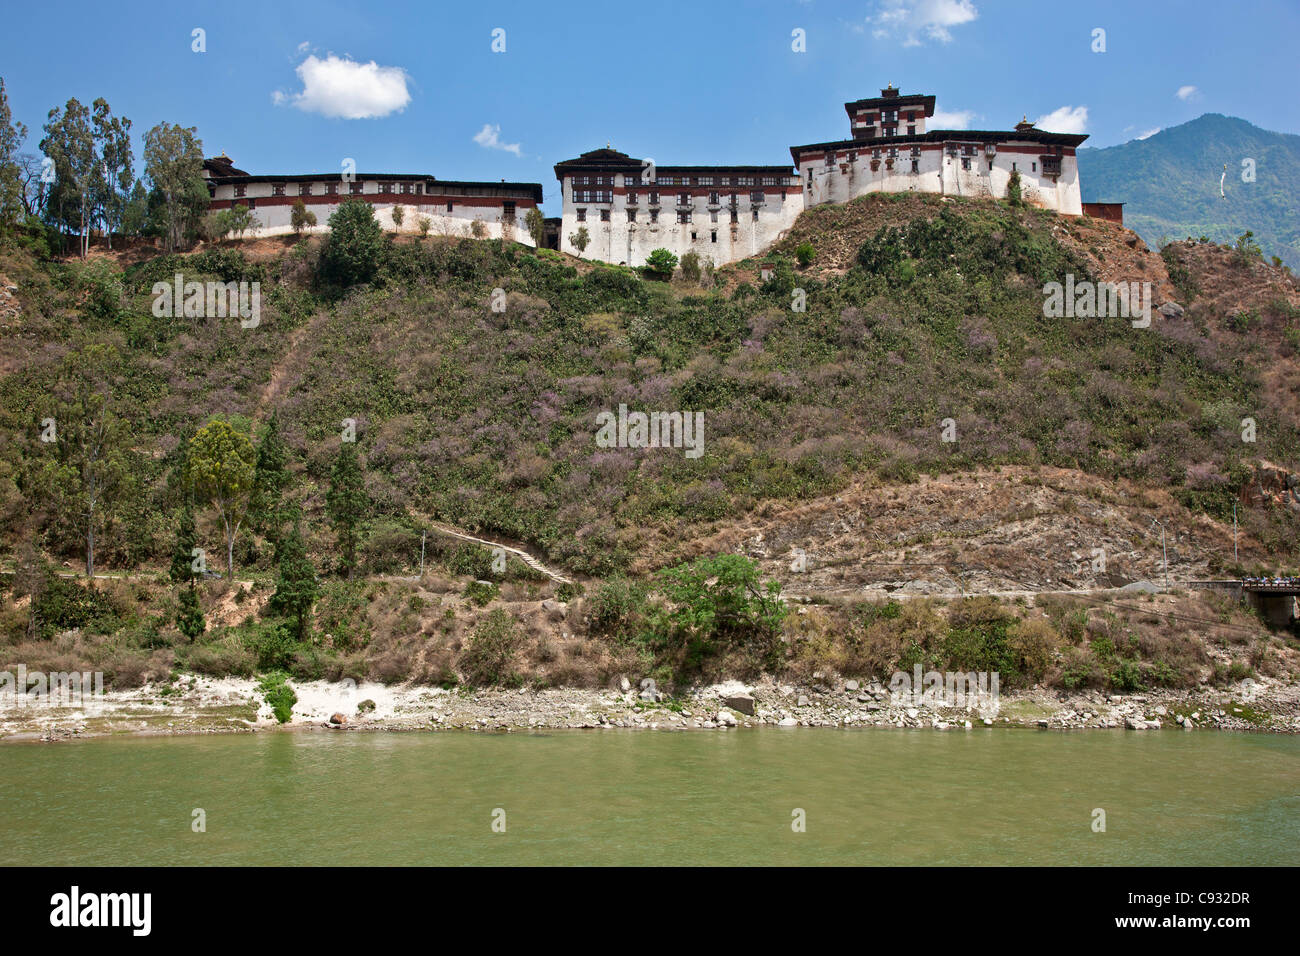 The massive Wangdue Phodrang Dzong is situated atop a high ridge between the Punak Tsang and Dang Chhu rivers. - Stock Image